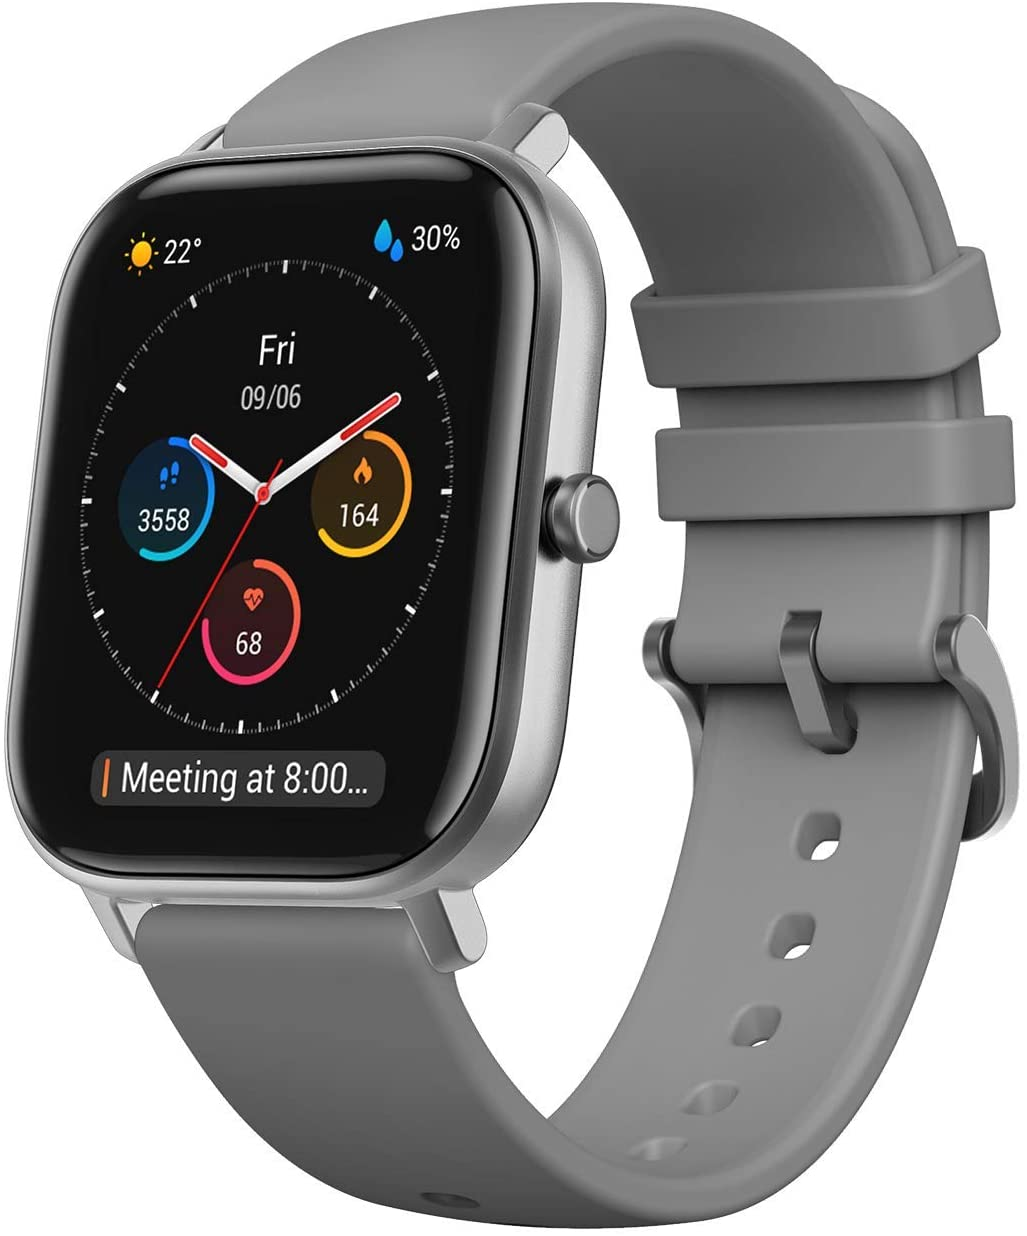 """Amazfit GTS Fitness Smartwatch with Heart Rate Monitor, 14-Day Battery Life, Music Control, 1.65"""" Display, Sleep and Swim Tracking, GPS, Water Resistant, Smart Notifications, Lava Gray"""